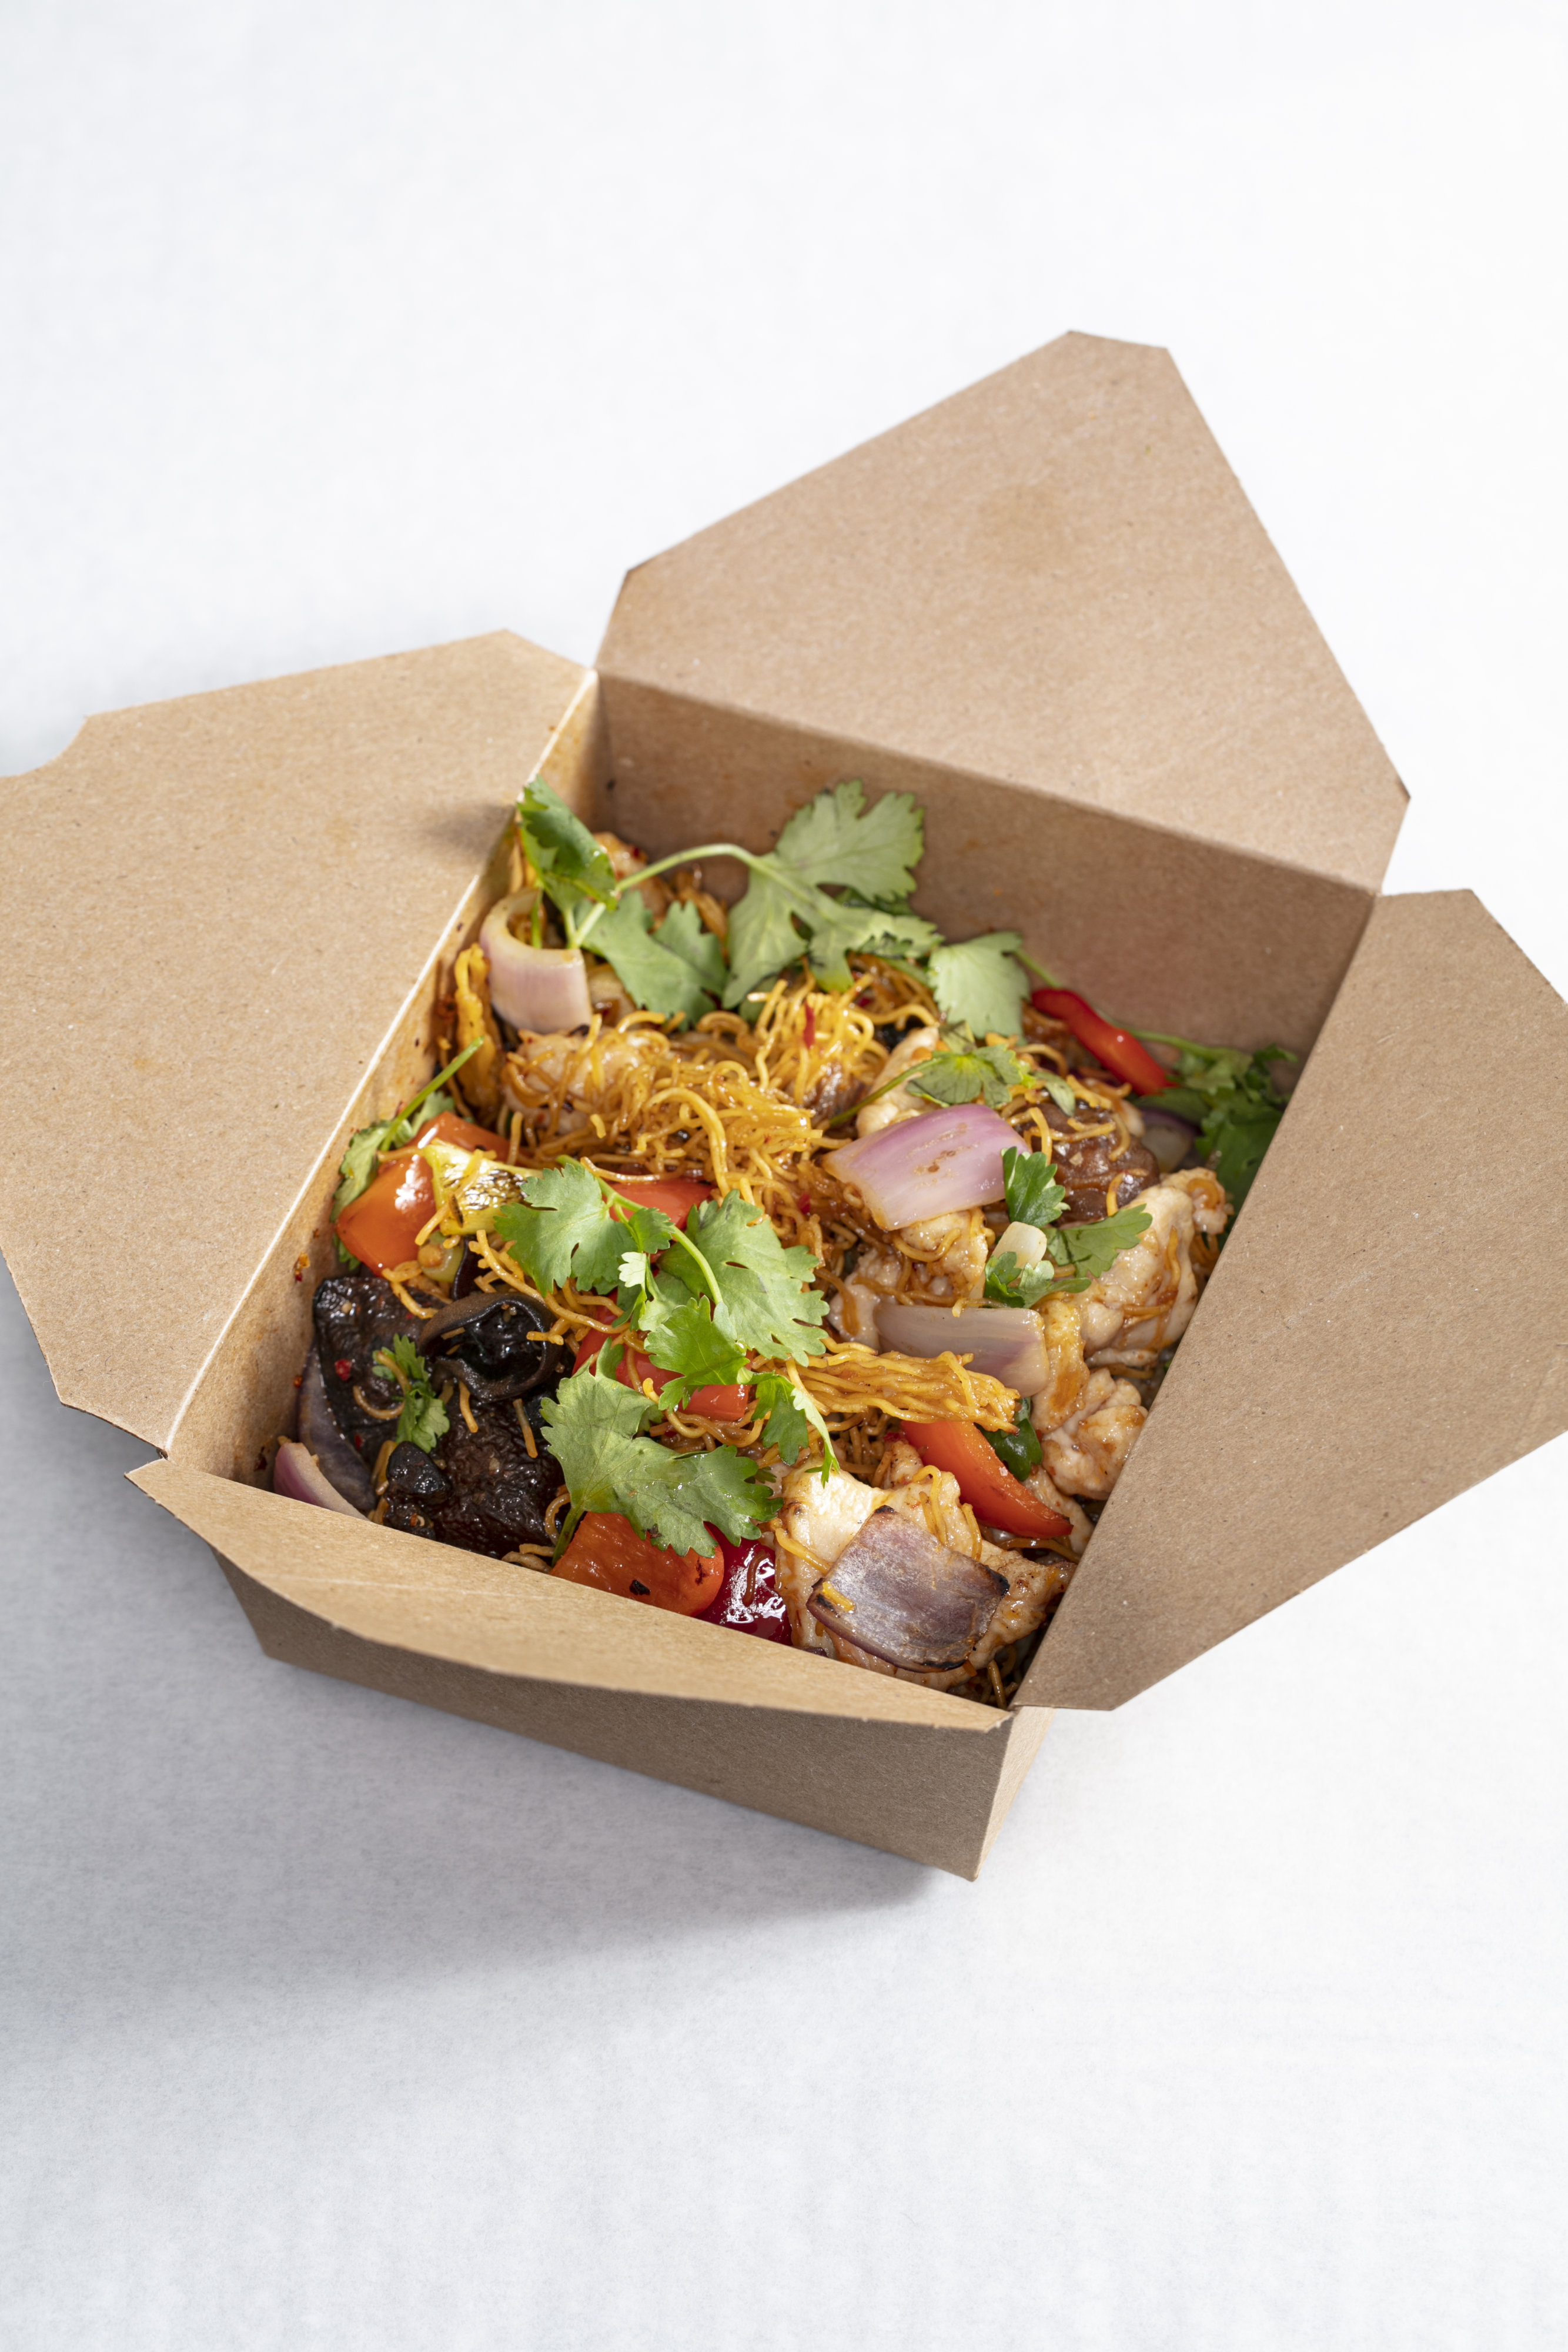 Sustainable packaging, like the recyclable containers for the chili chicken chow mein, is a priority for the team. Photo by Melissa Hom.